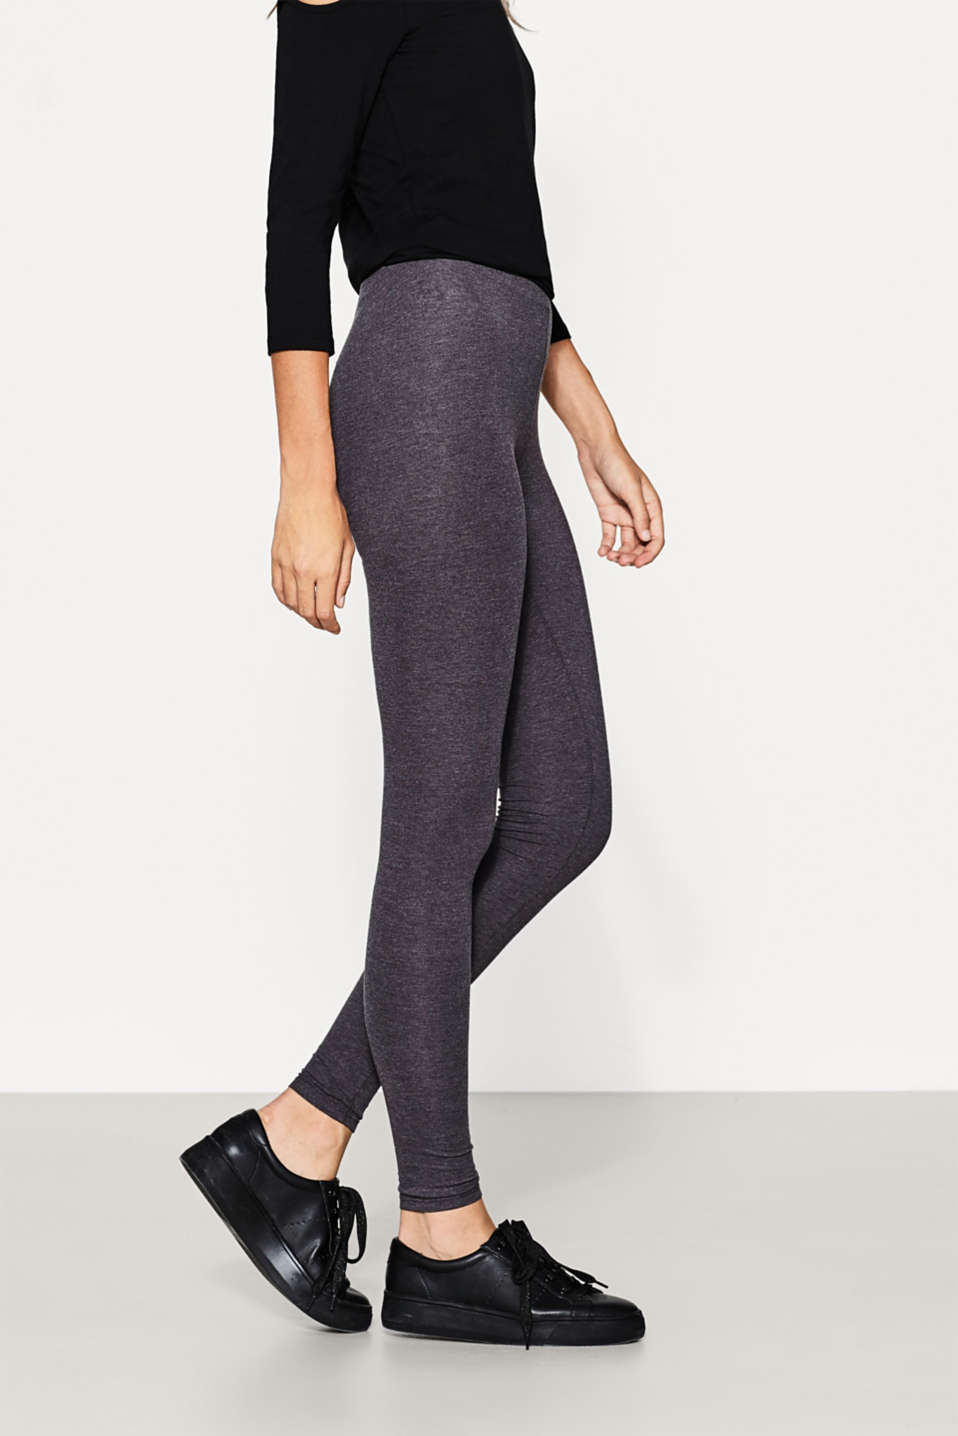 edc - Basic Leggings aus Baumwoll-Mix